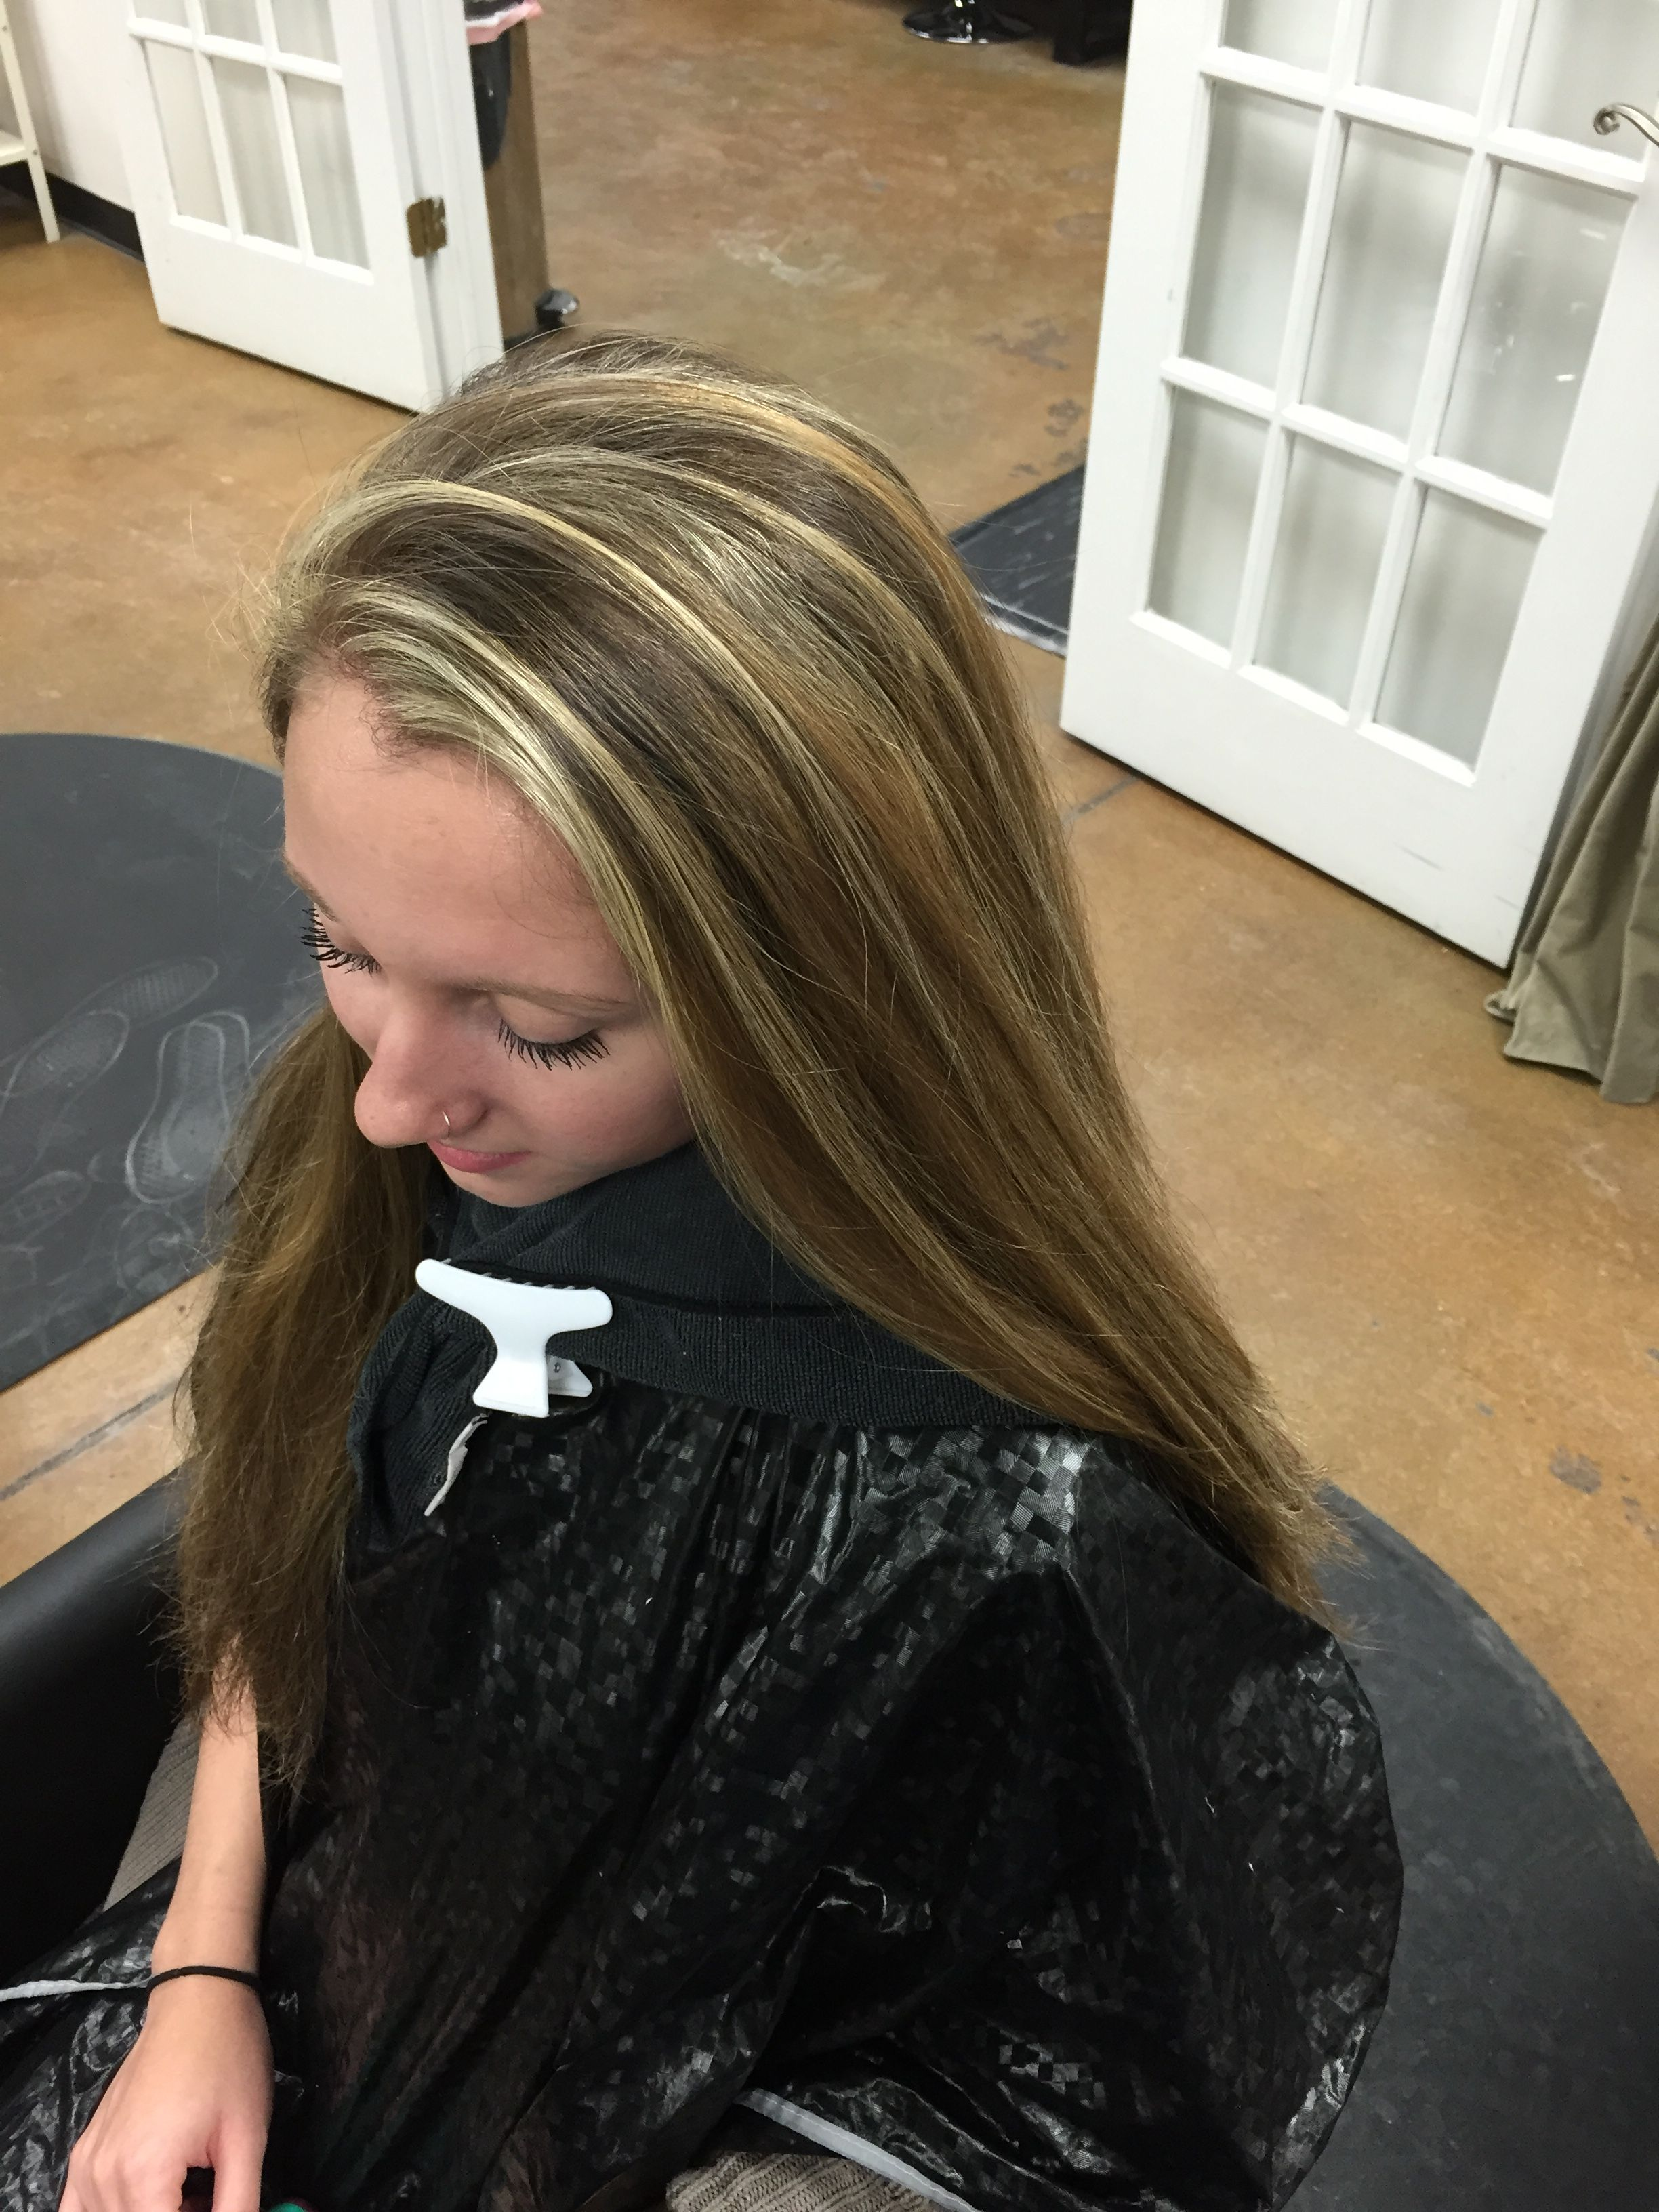 Pin by Becca Buckner on Cosmetology school💋 Long hair